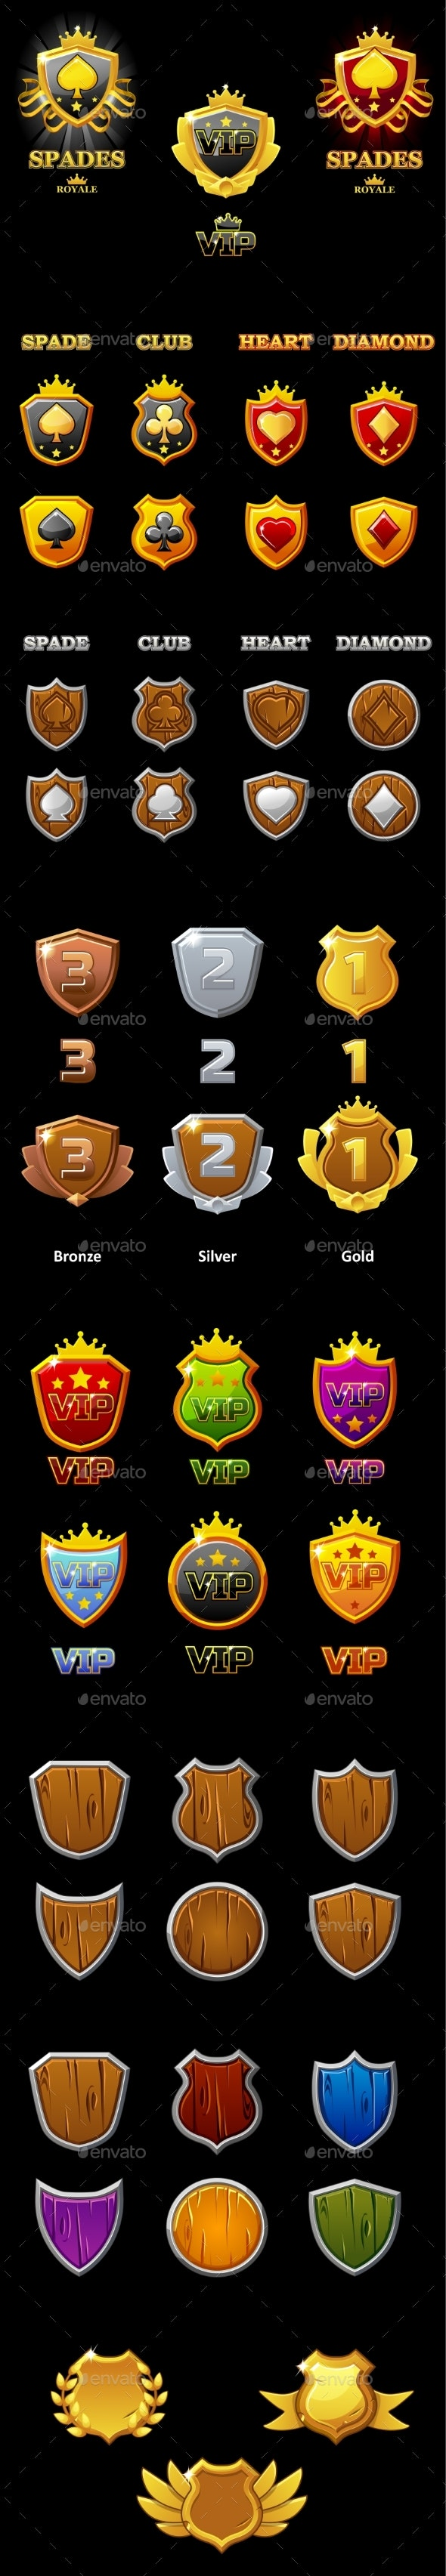 Suits Deck of Playing Cards and VIP Logo on Shield - Miscellaneous Vectors